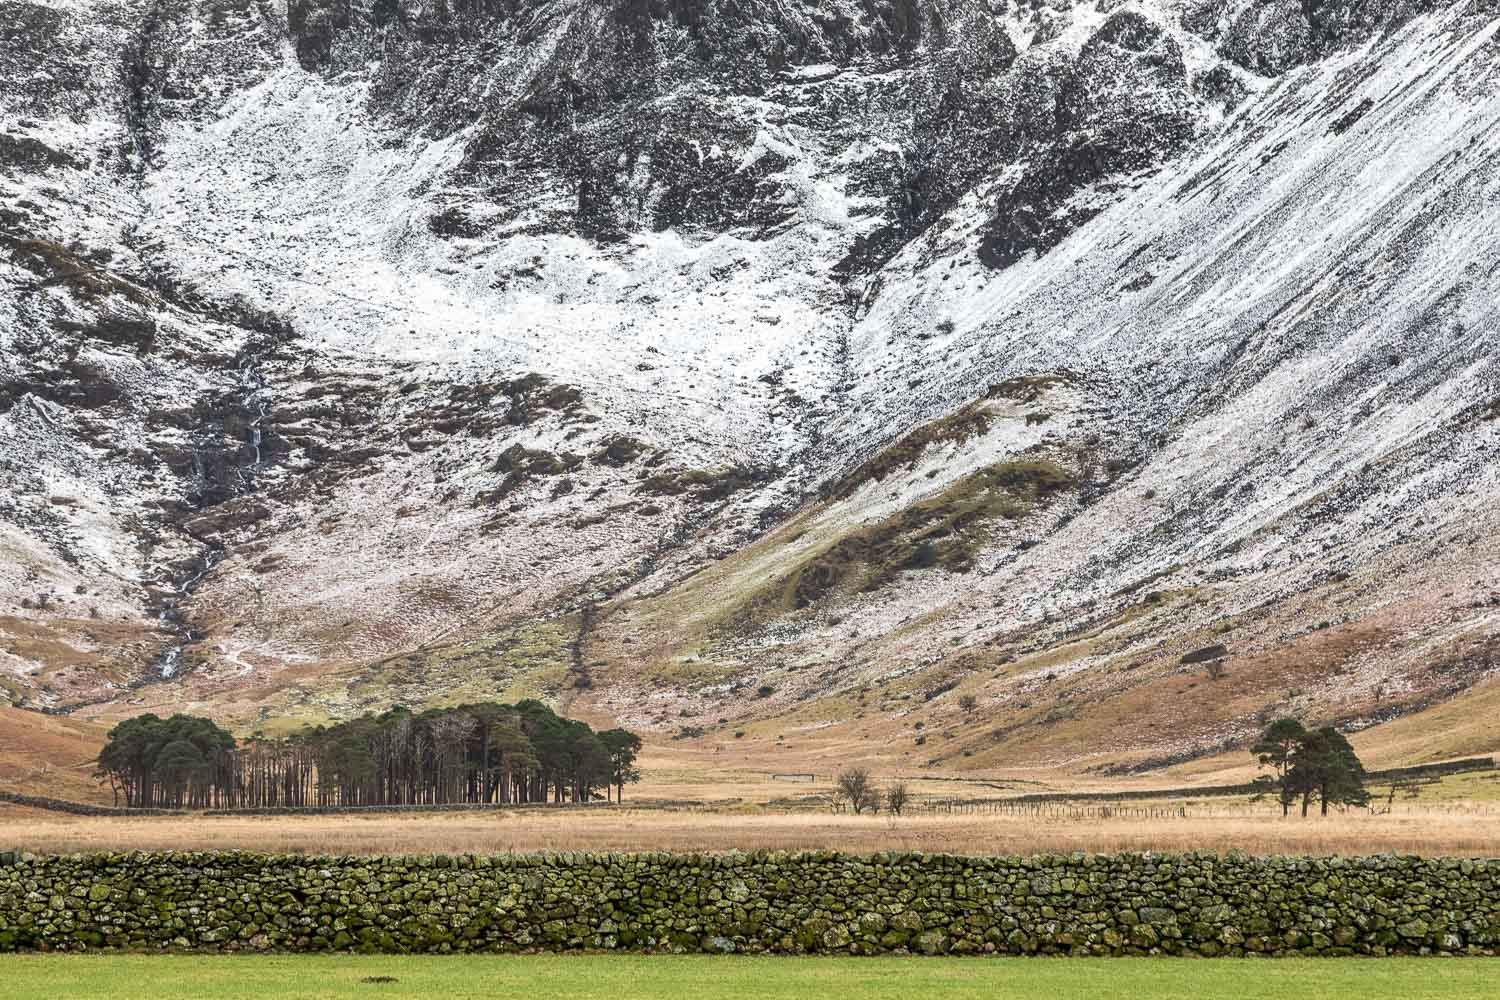 Buttermere pines and Warnscale Bottom